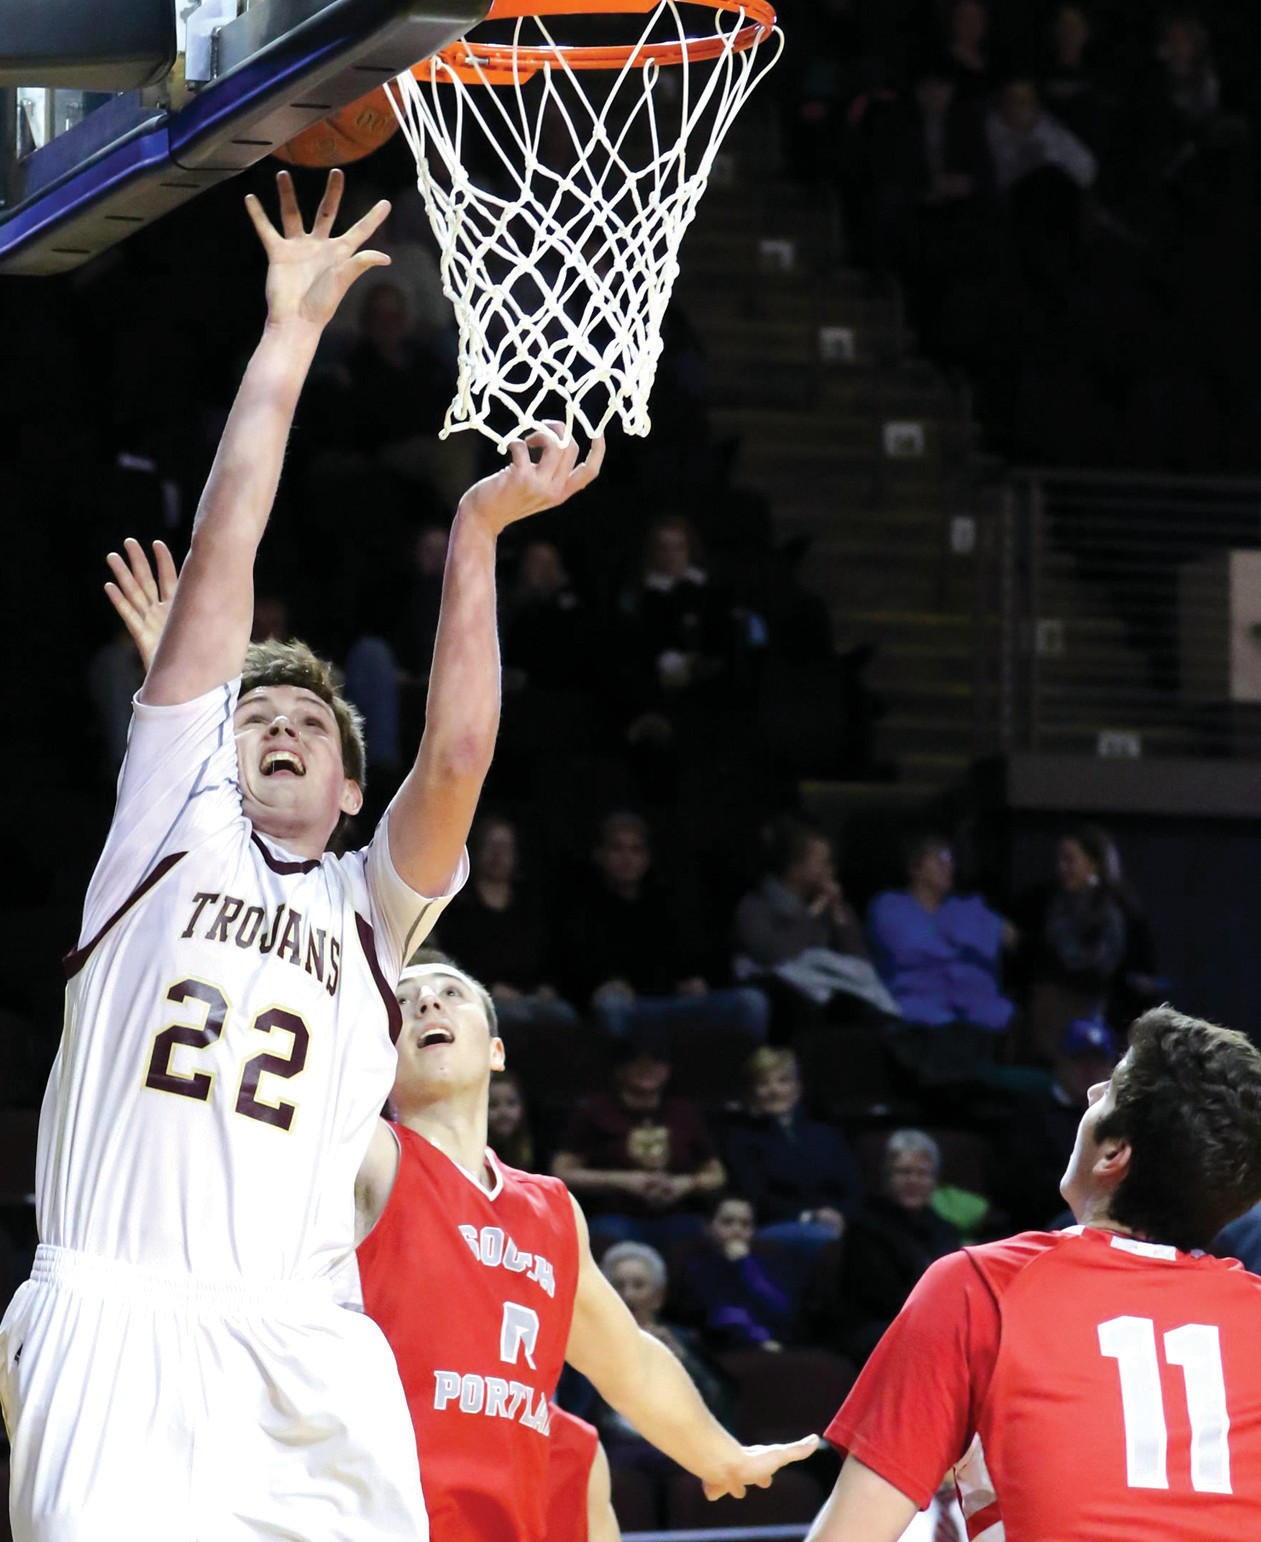 Thornton Academy's David Keohan goes up for a shot during Tuesday's Class AA South semifinal game against South Portland.